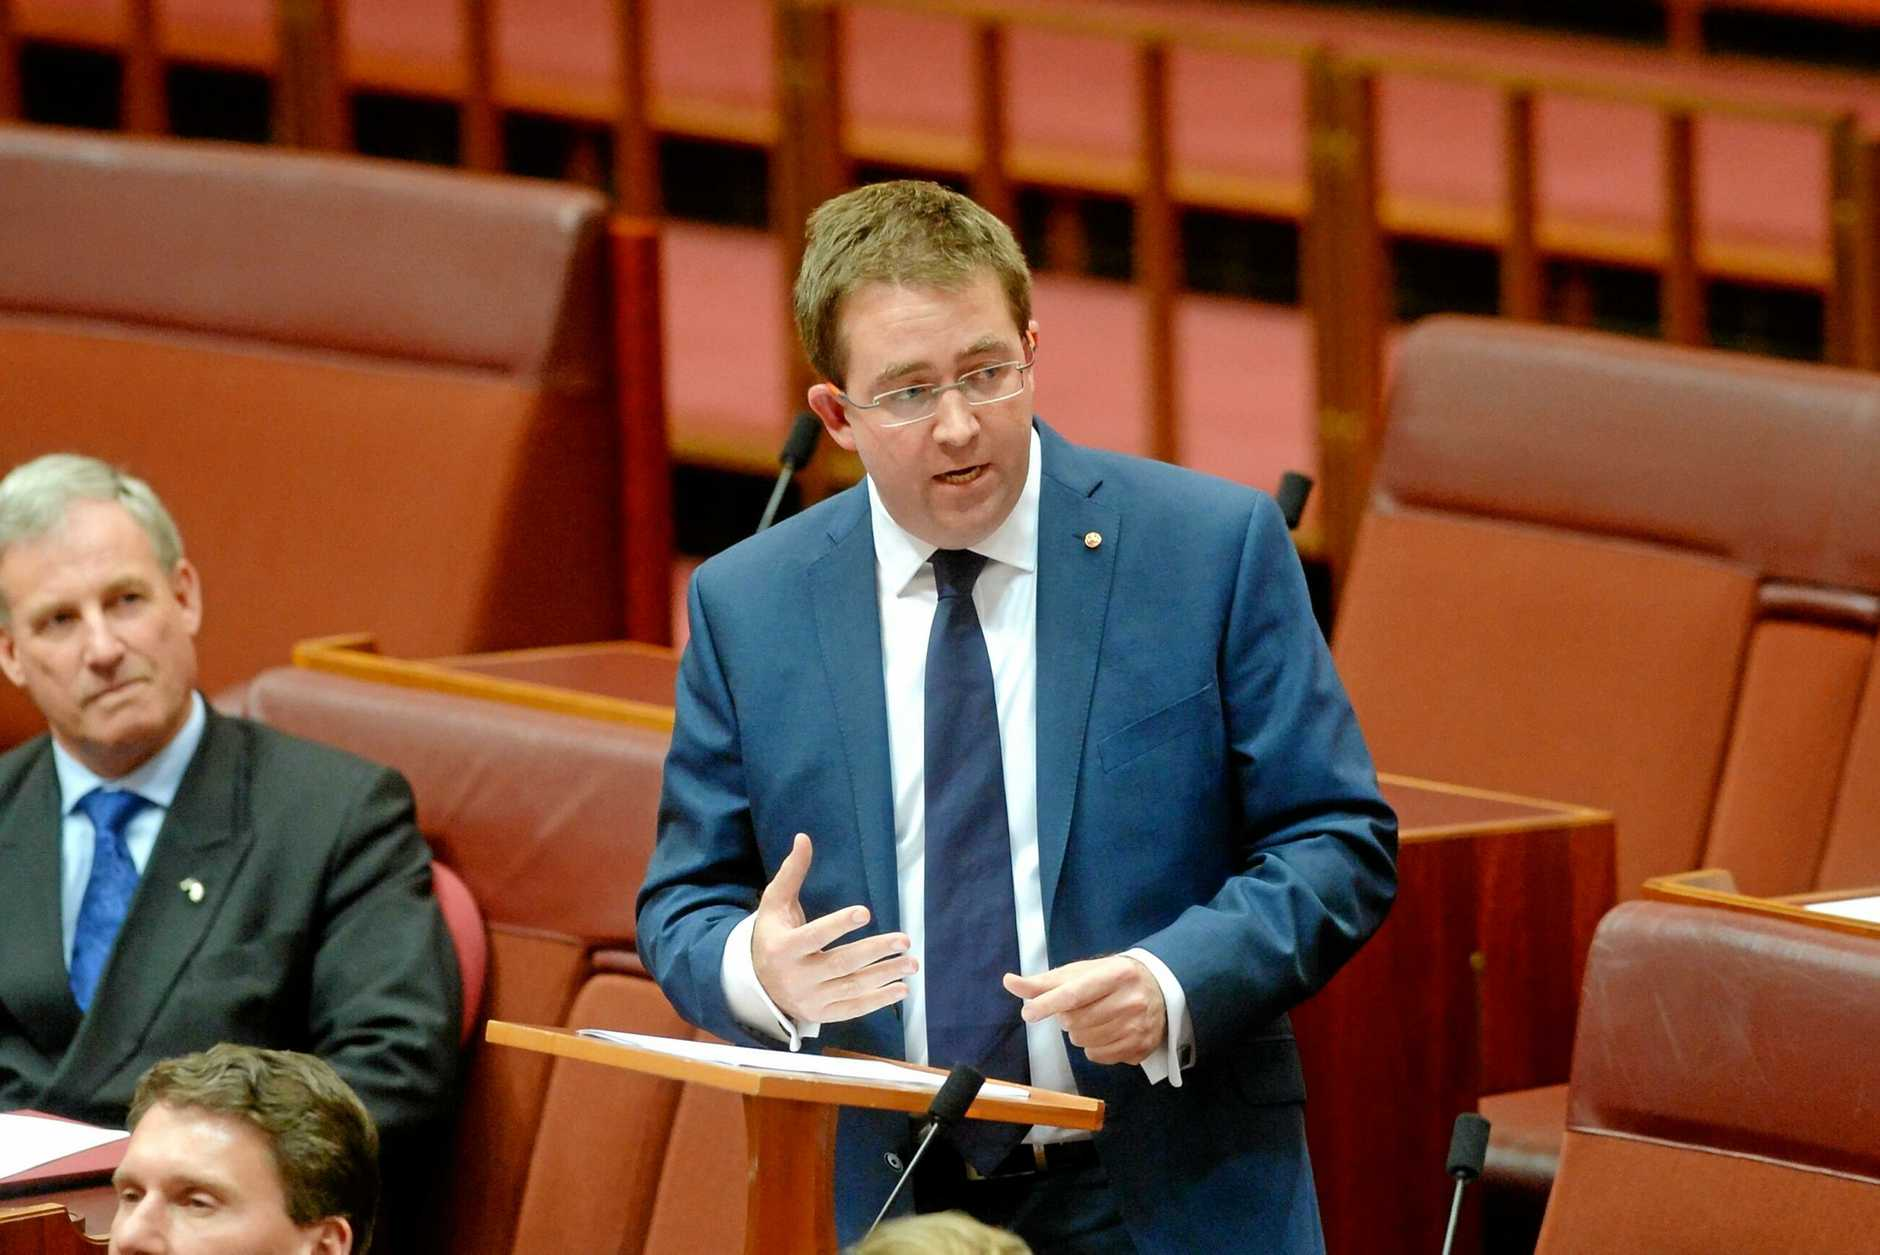 Liberal Party Senator James McGrath in 2014 delivering his maiden speech to the Senate at Parliament House Canberra.